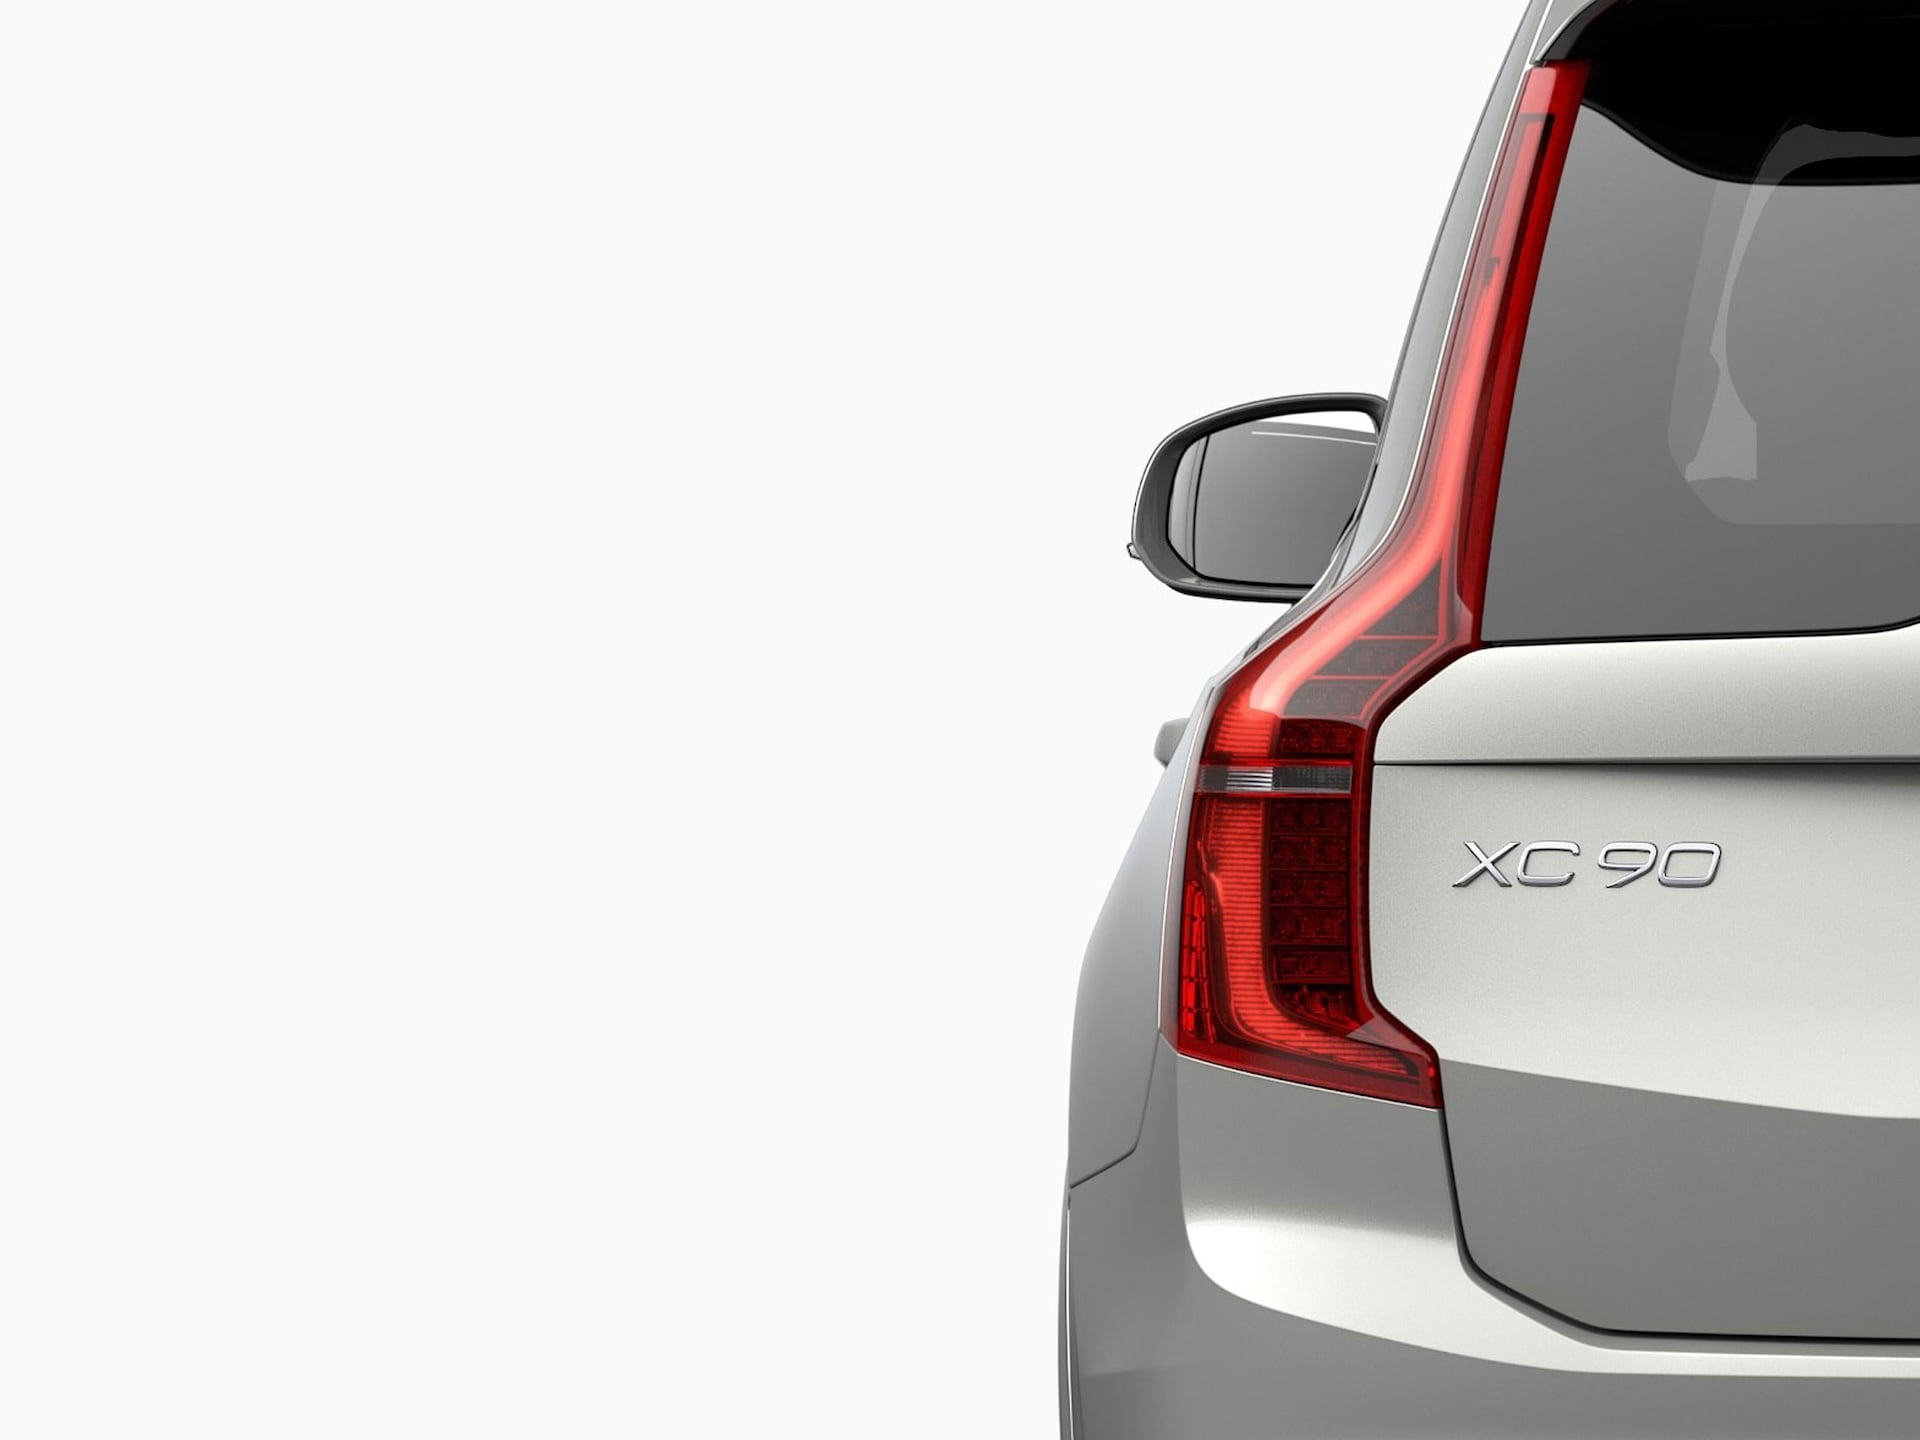 A Volvo XC90 Recharge plug-in hybrid SUV being charged.